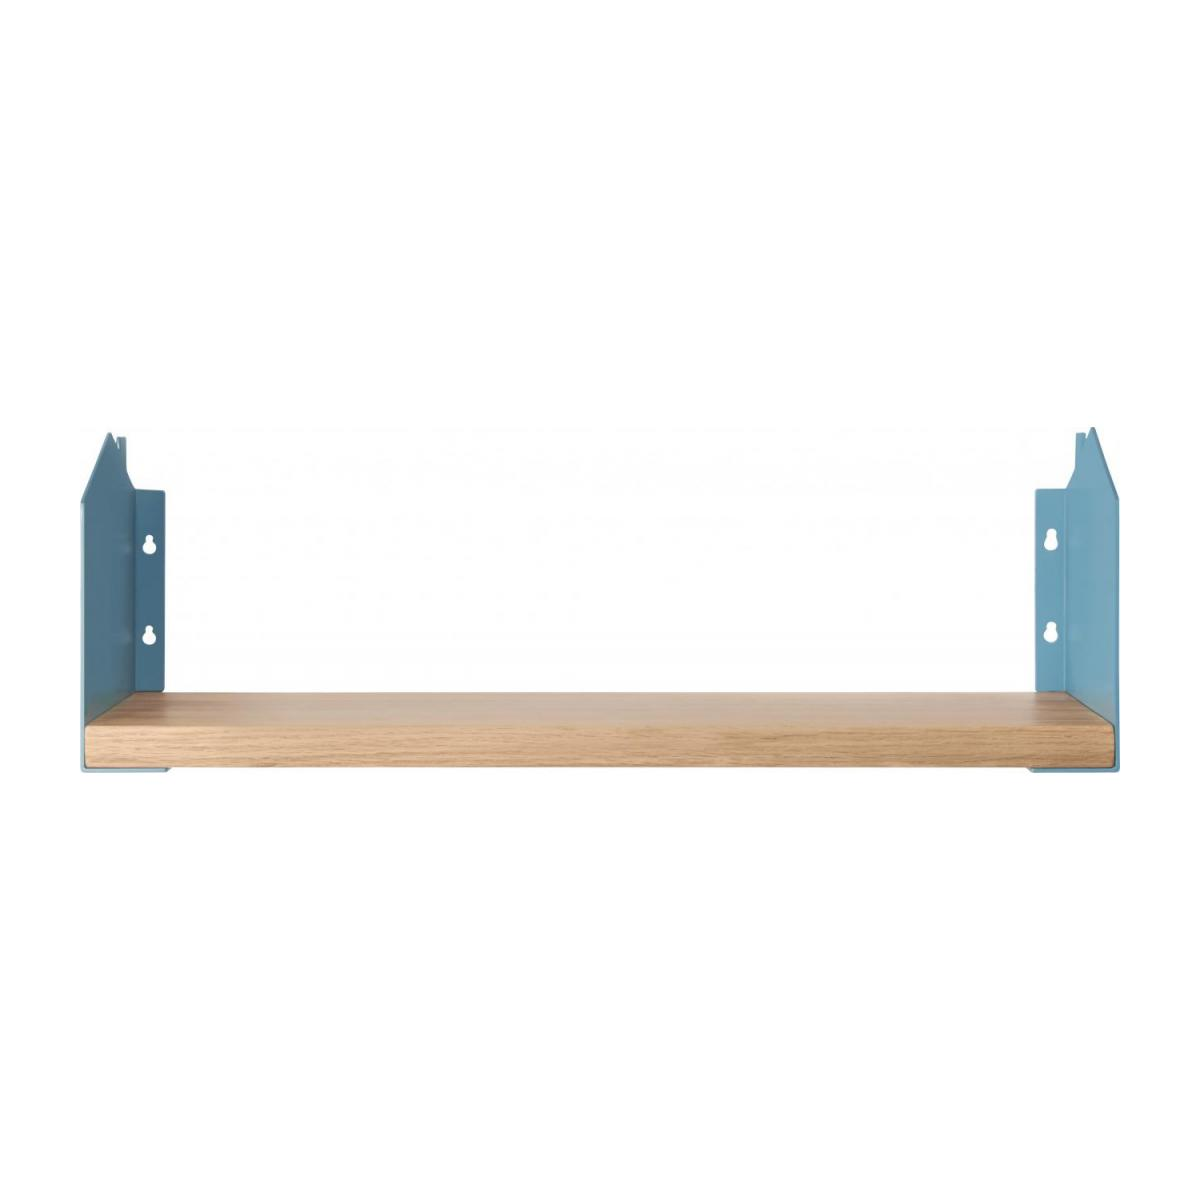 Shelf made of wood and metal, natural and grey-blue n°2